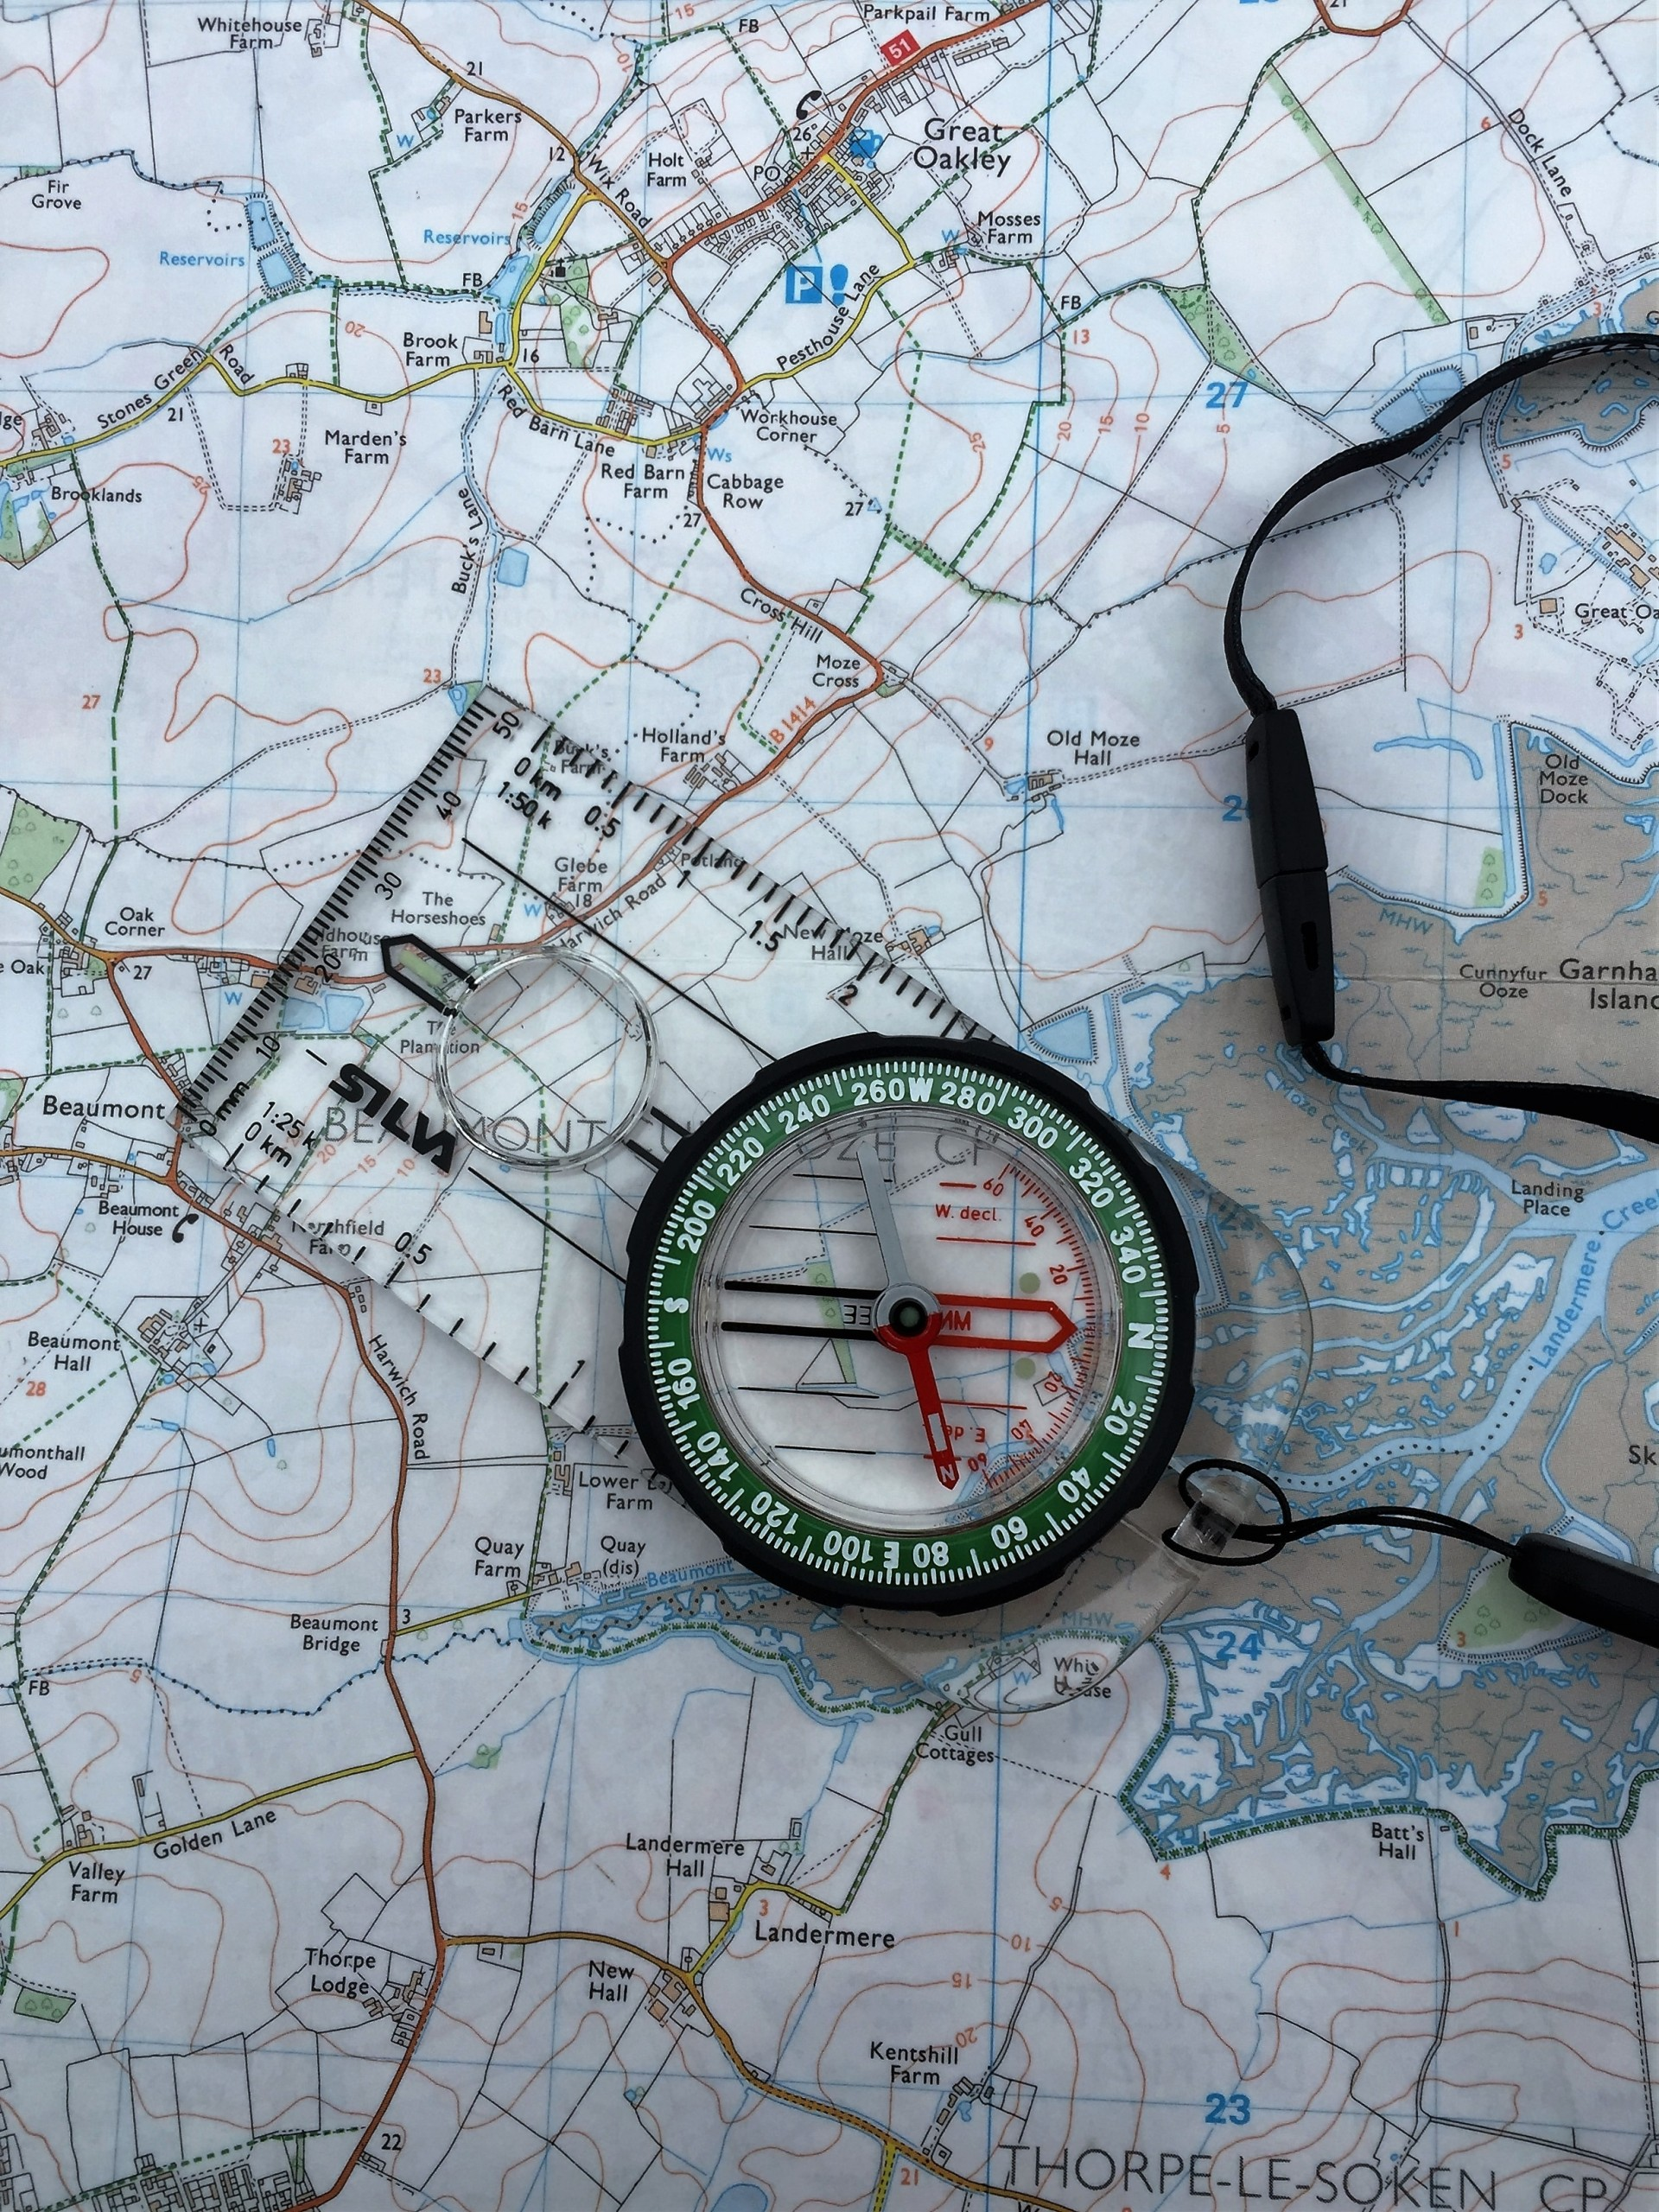 Keep it simple and stick to the basics when using a compass and map